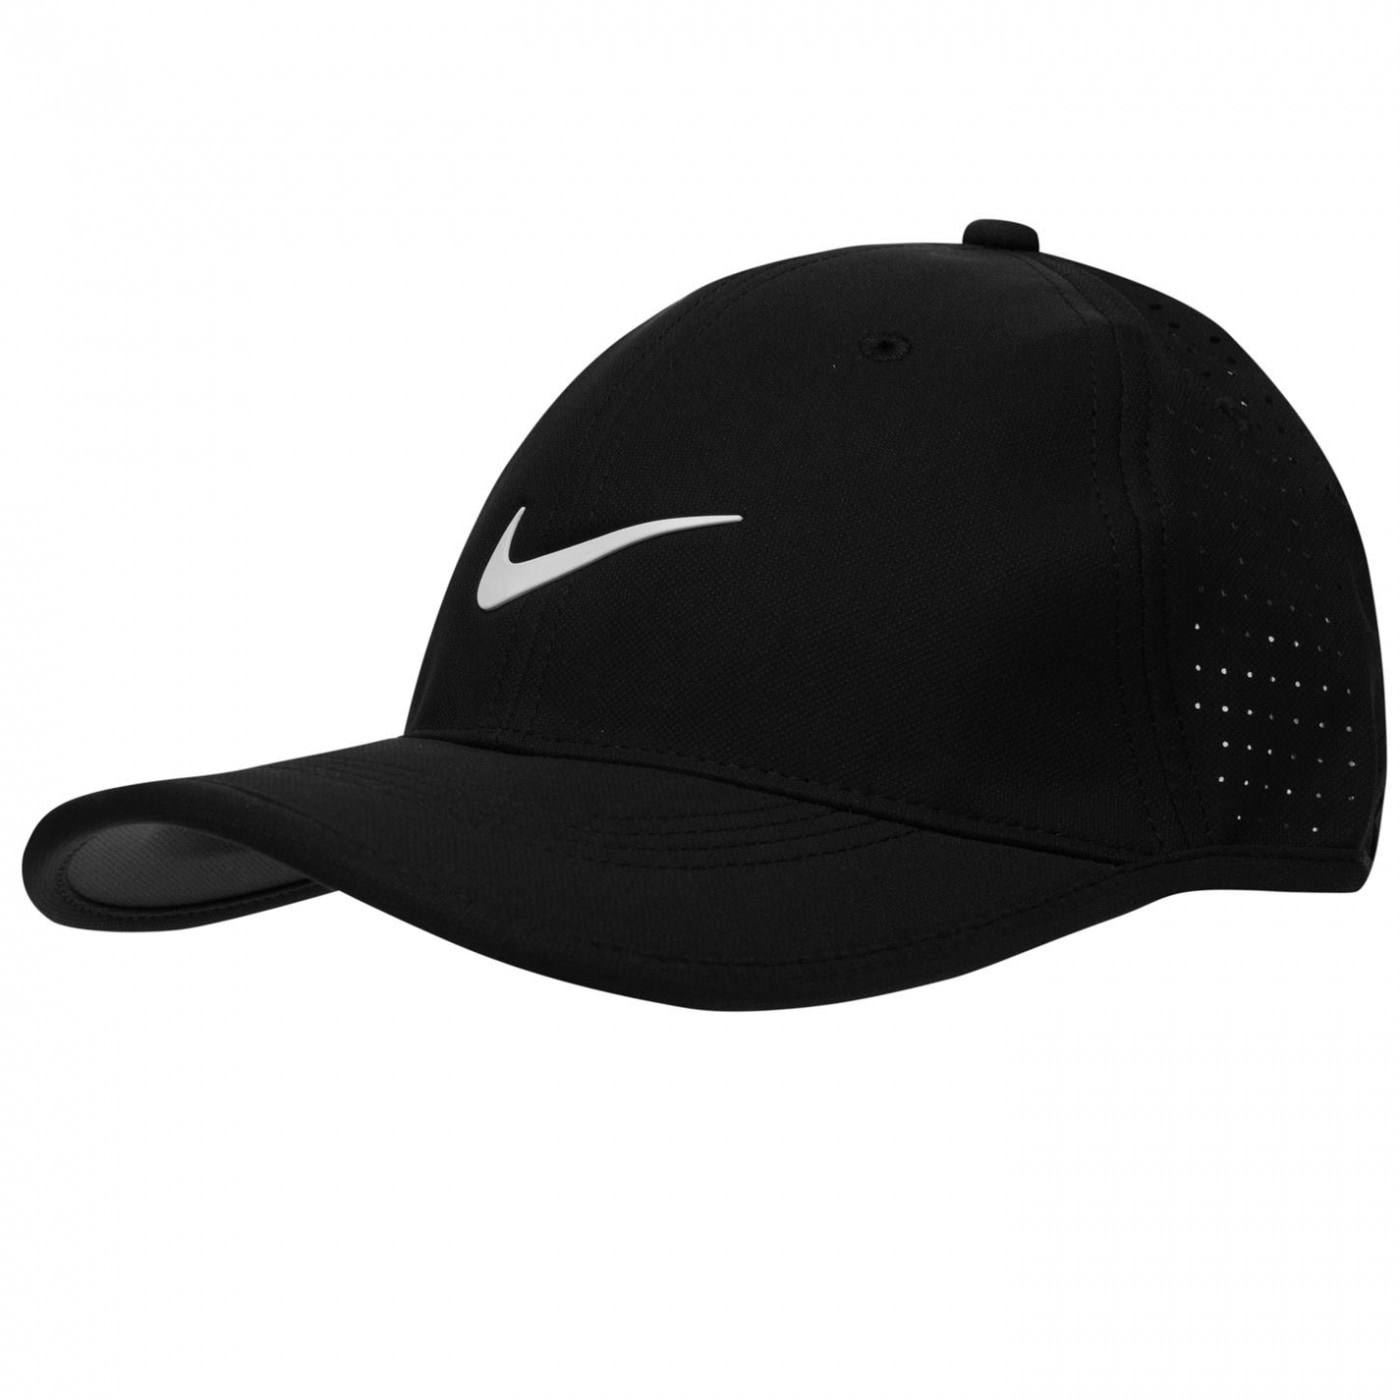 Slazenger Golf Flex Cap Mens